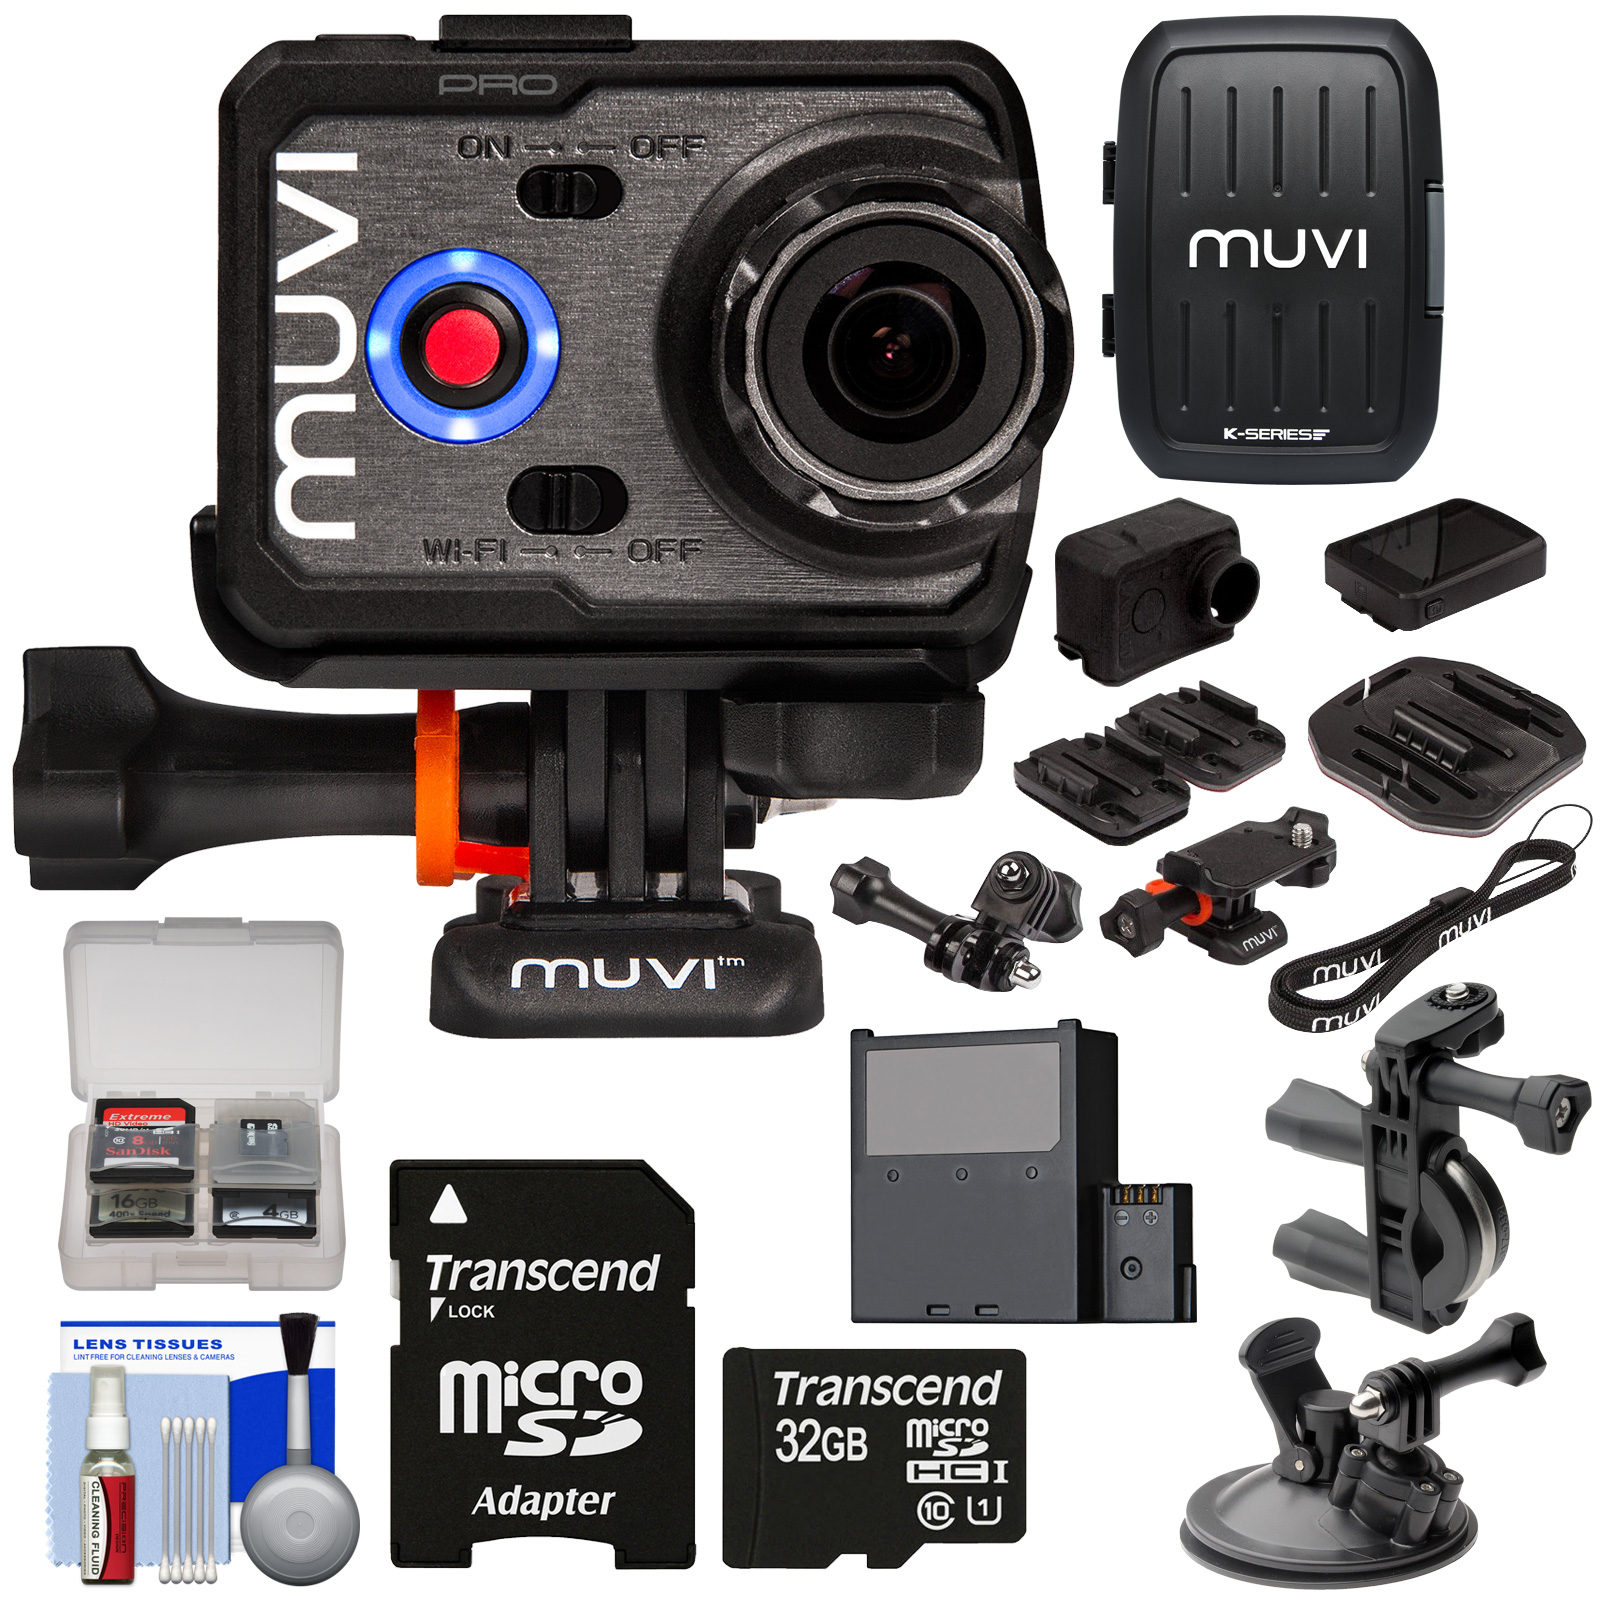 Veho MUVI K2 PRO Wi-Fi 4K HD Action Video Camera Camcorder with Handlebar & Suction Cup Mounts, LCD Display, & Cases + 32GB Card + Battery + Kit VCC-007-K2PRO-93223-Kit